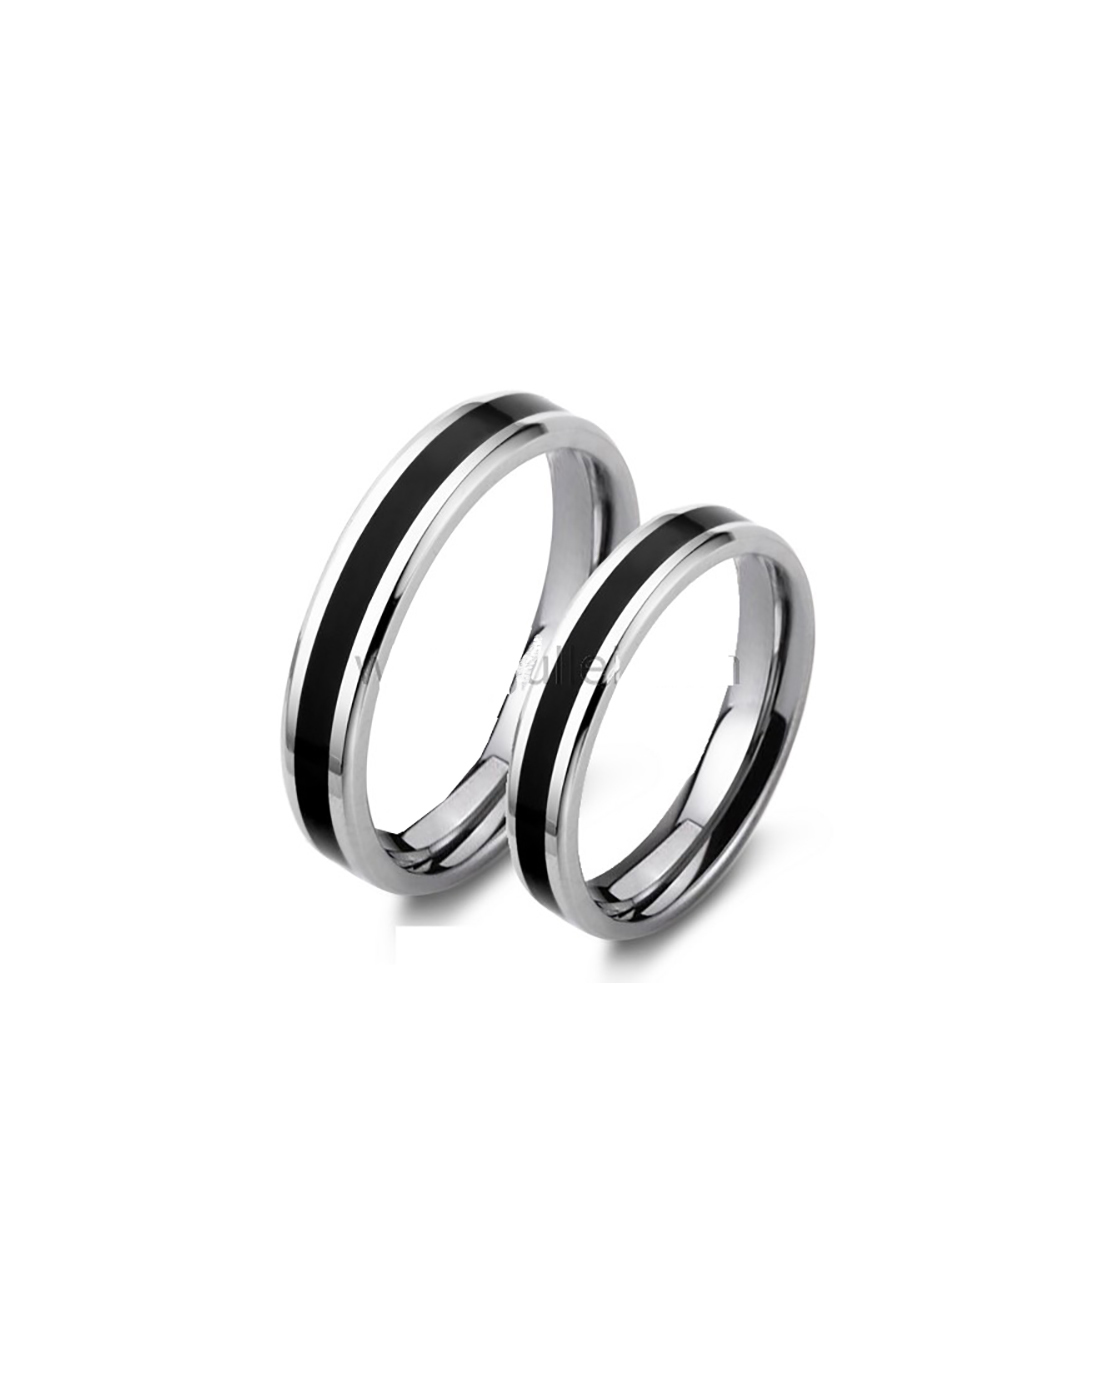 Silver Enamel Rings For Male & Female